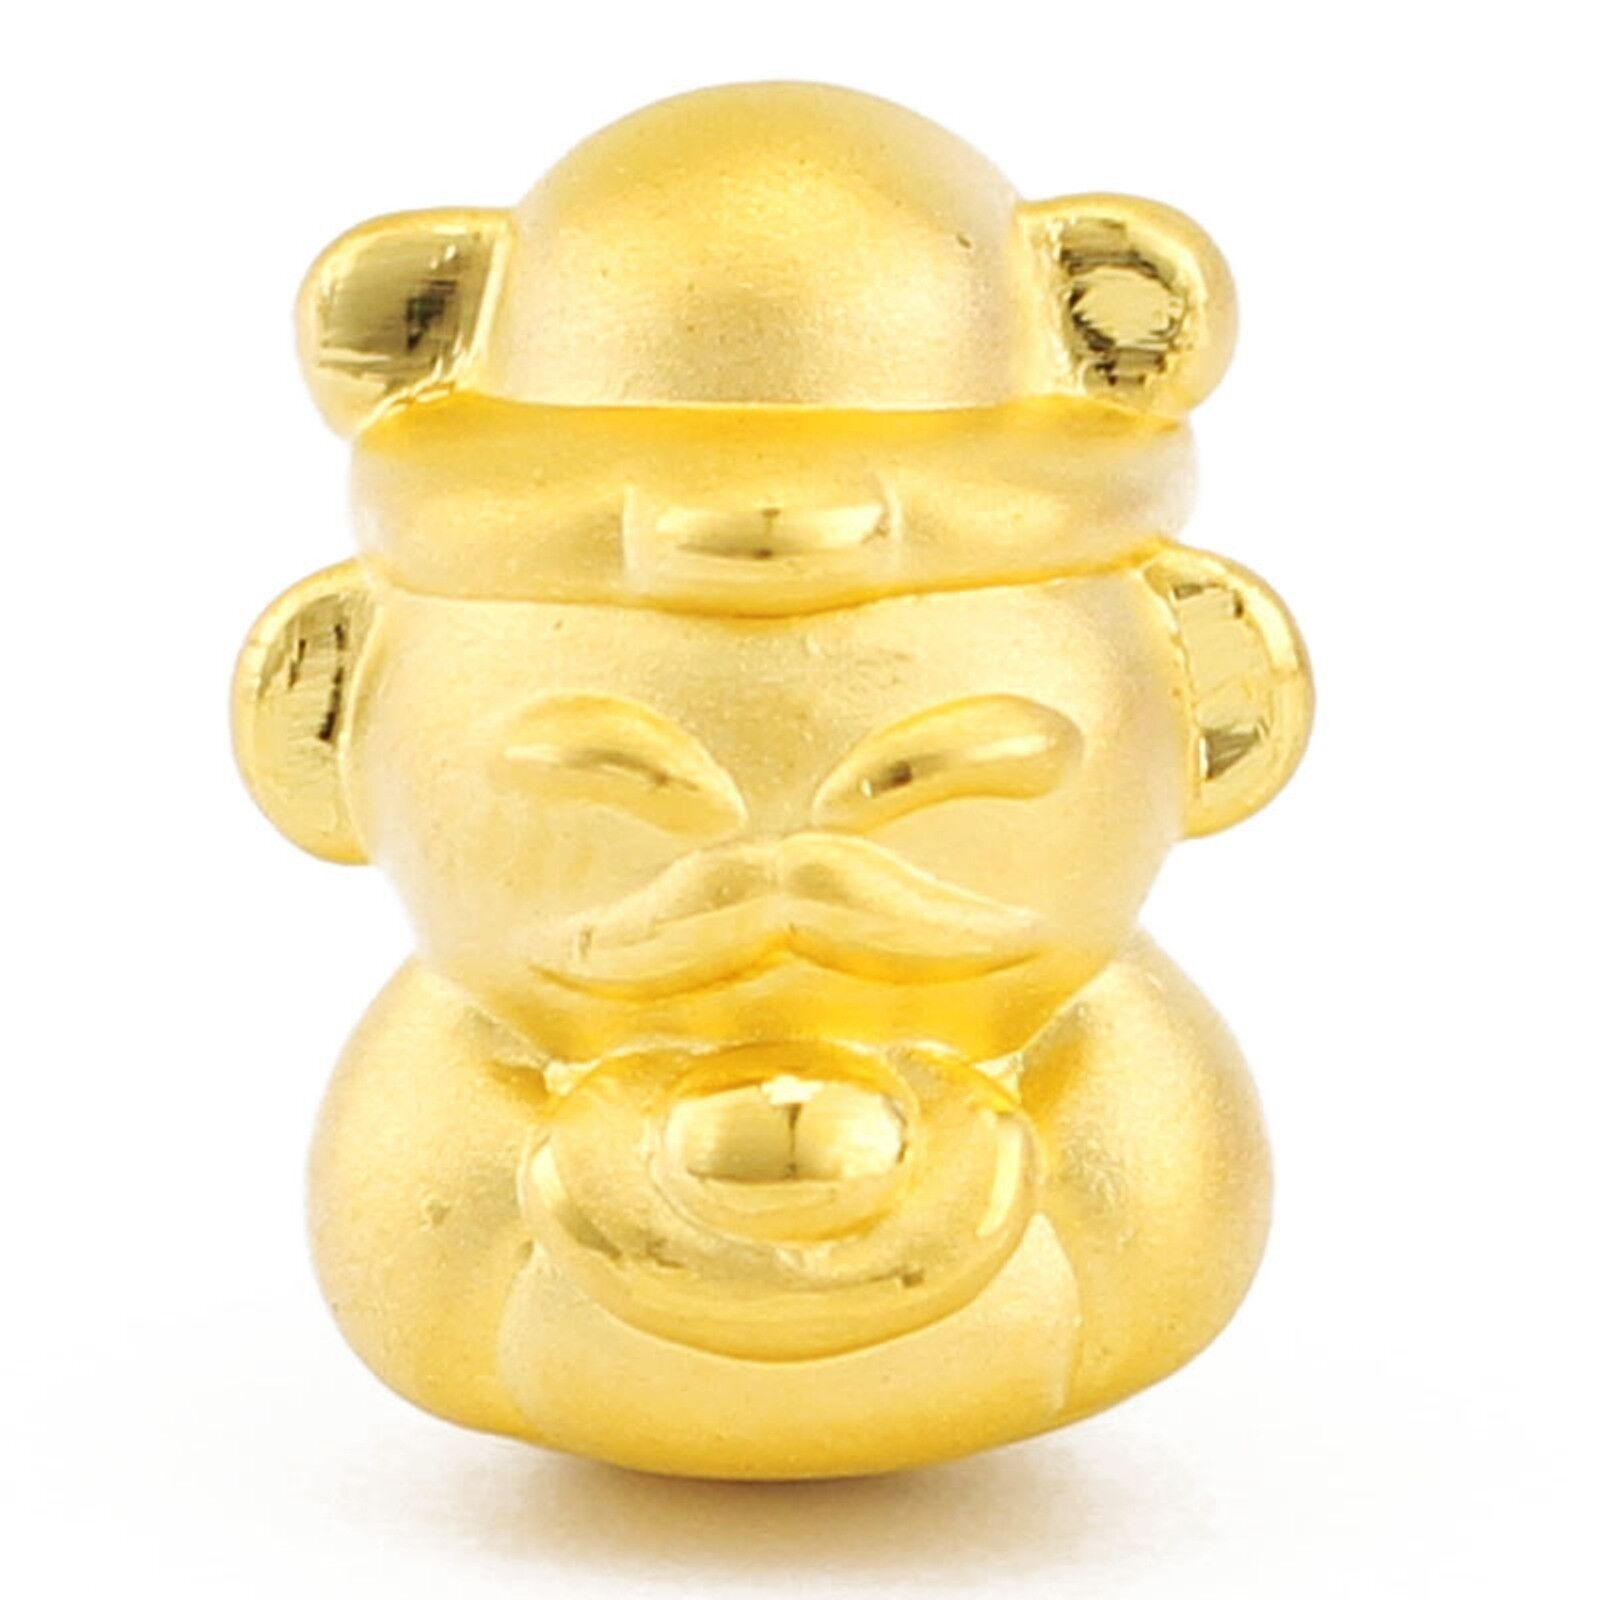 Pure 999 24K Yellow gold Bead 3D Cute God Of Wealth Pendant   1.5g